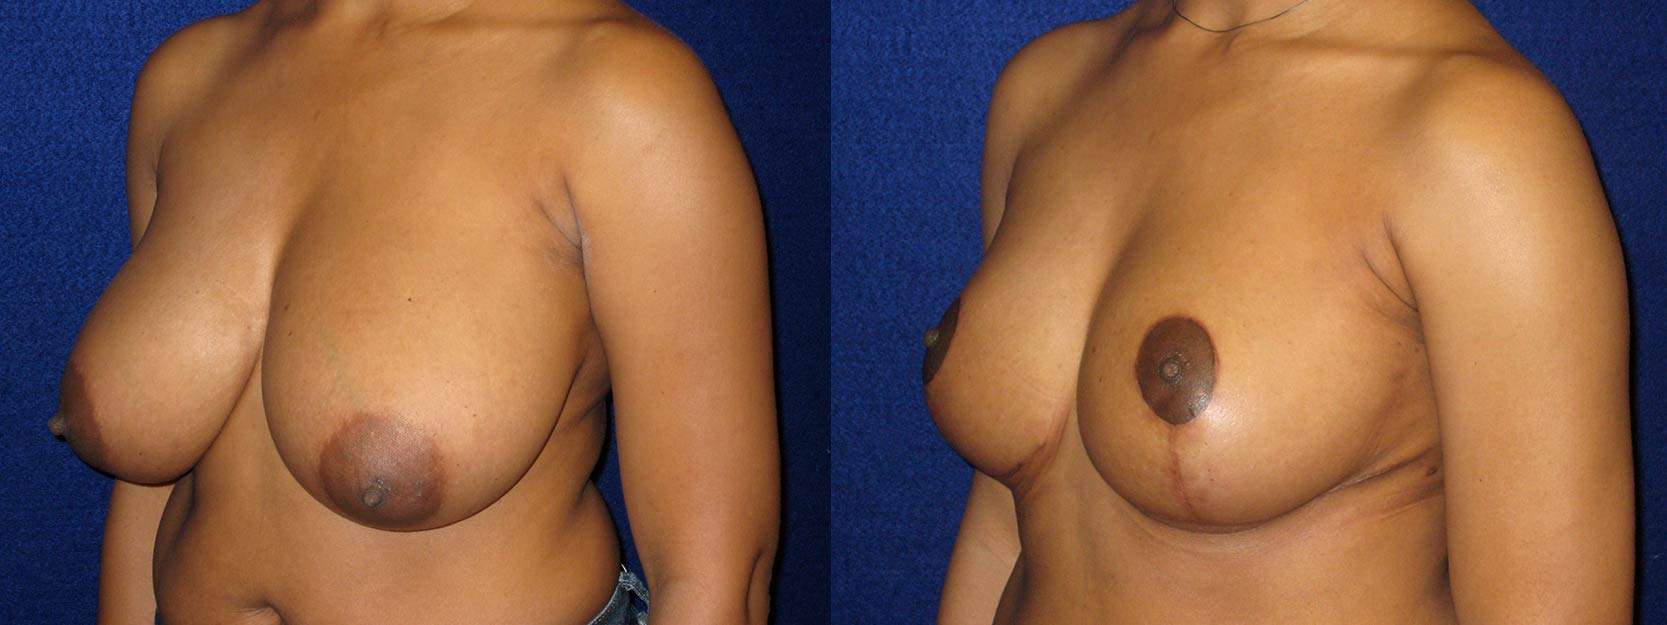 Left 3/4 View - Breast Reduction